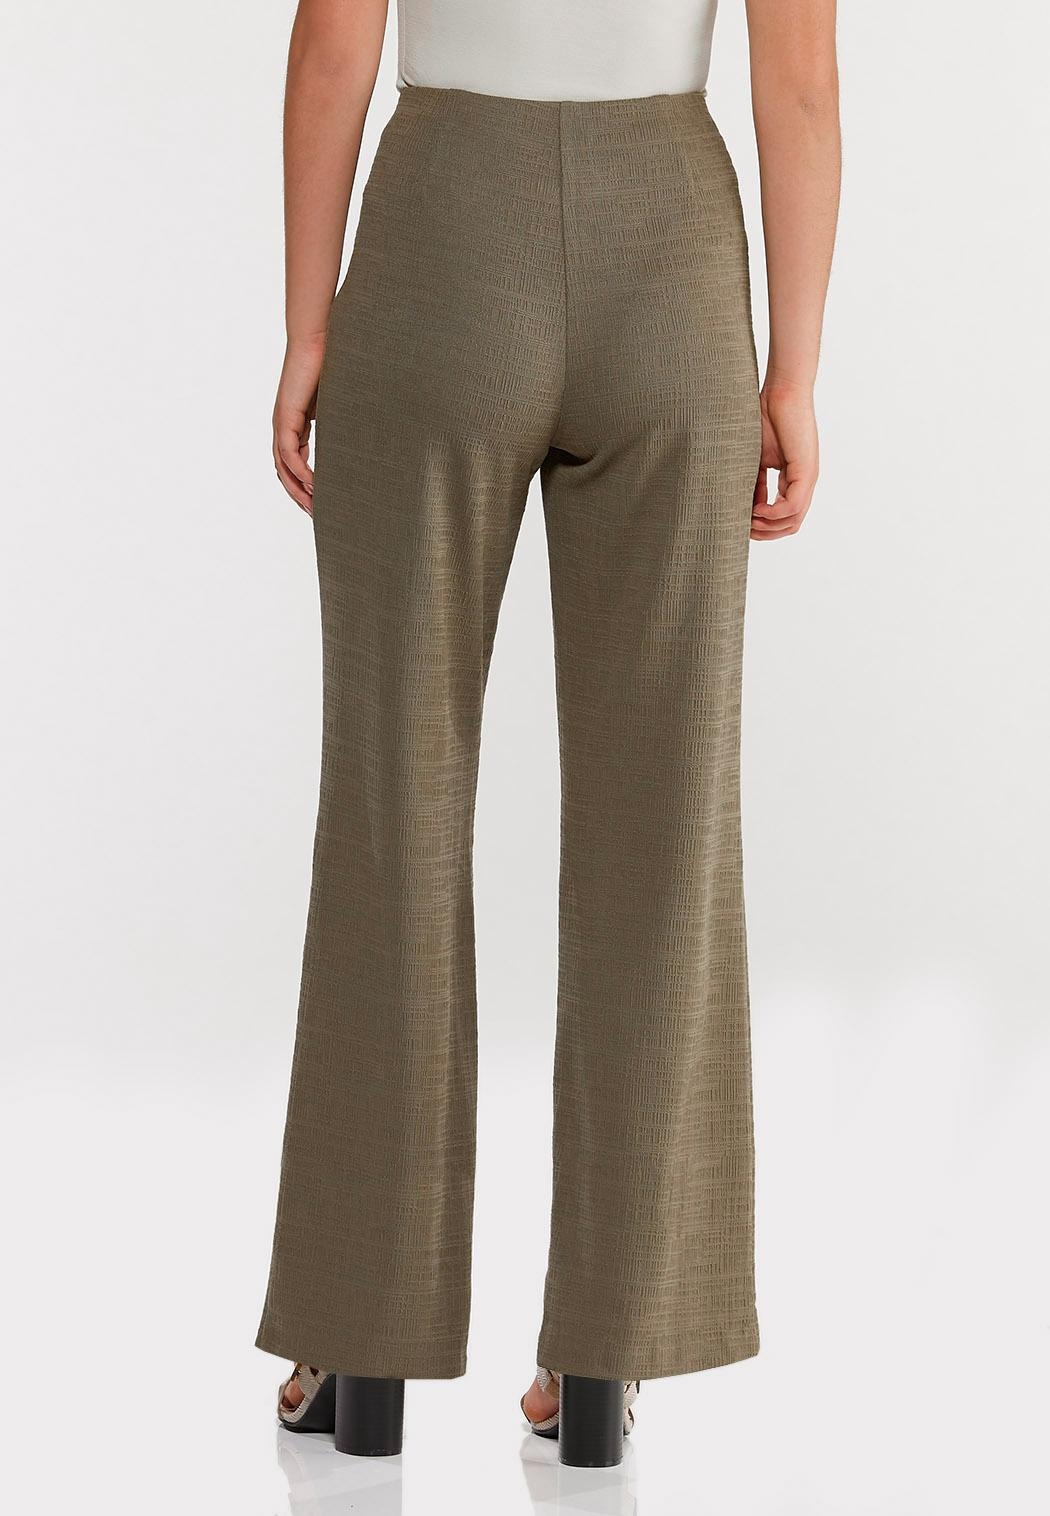 Textured Self-Tie Pants (Item #44491482)